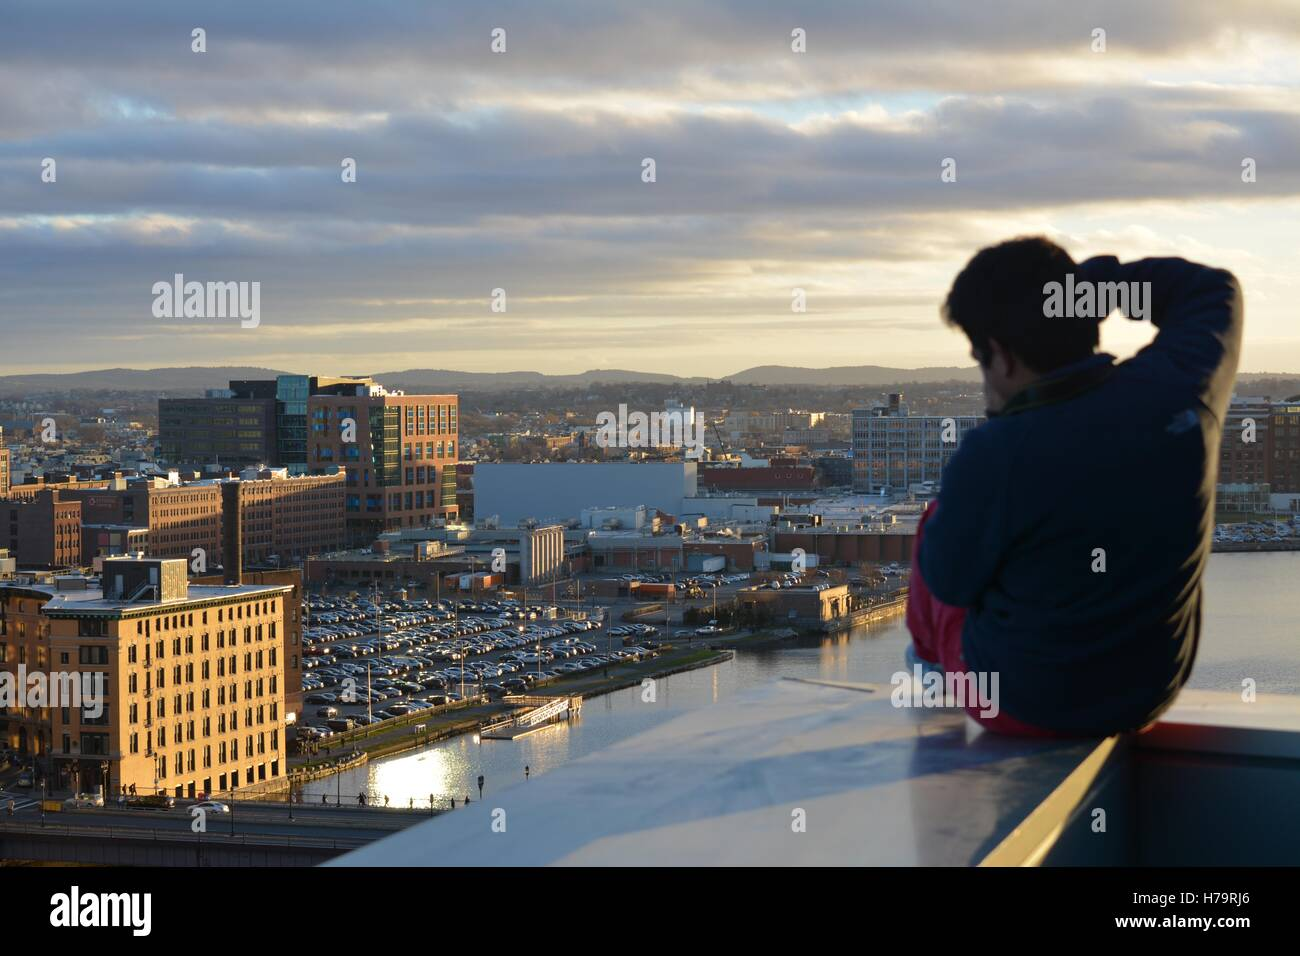 A Man Sitting On Ledge Of Skyscraper Overlooking City At Sunset